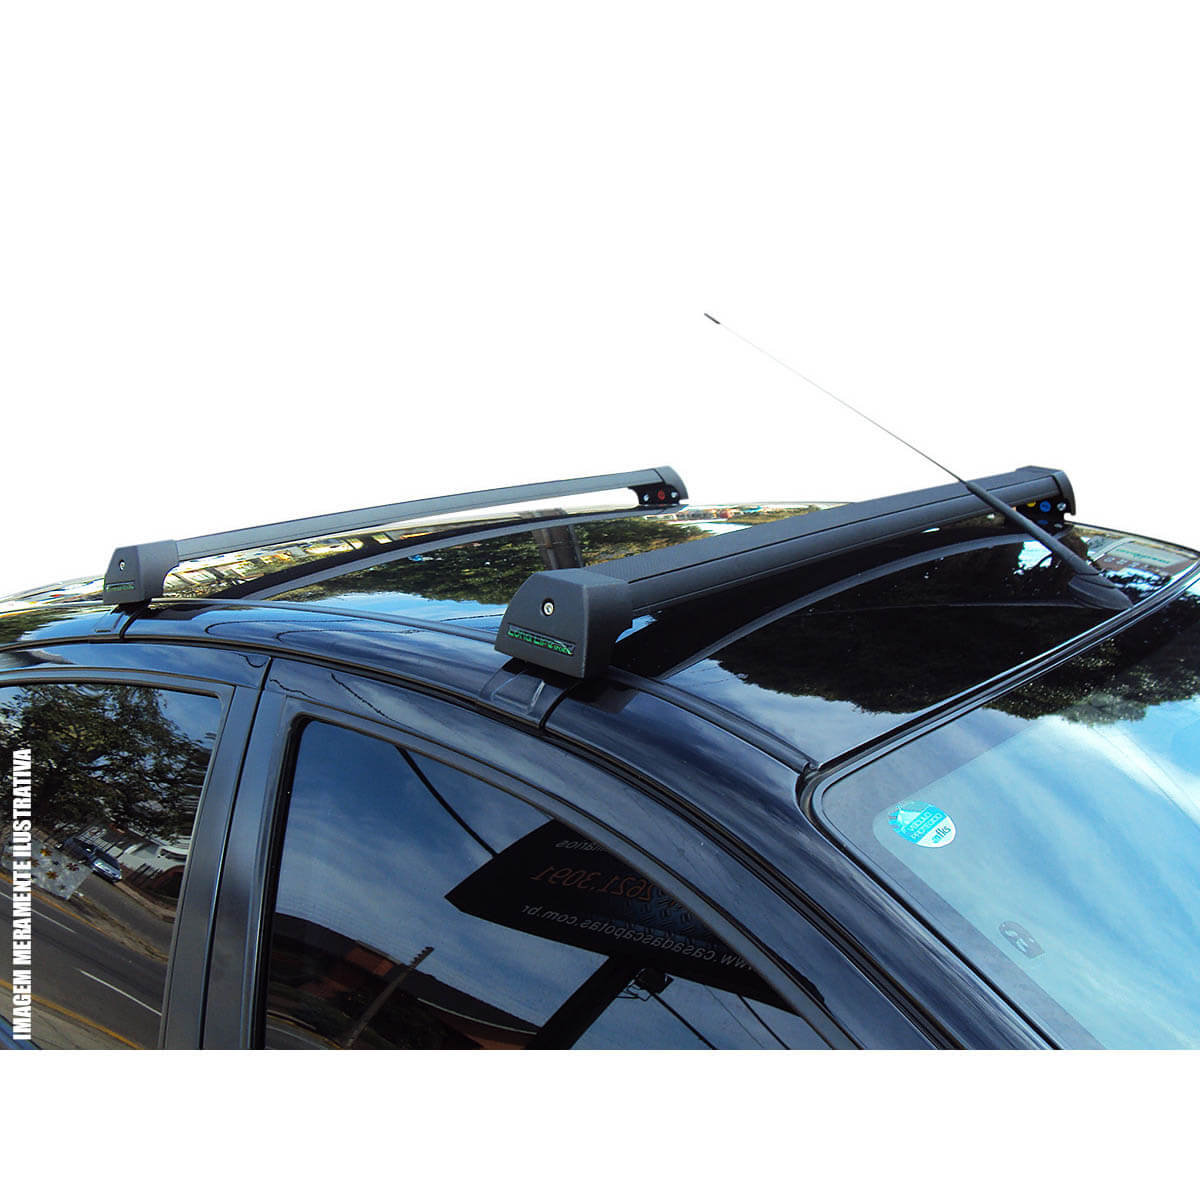 Rack de teto Long Life Sports preto Corsa hatch ou sedan 1994 a 2003 4 portas ou Classic 2005 a 2015